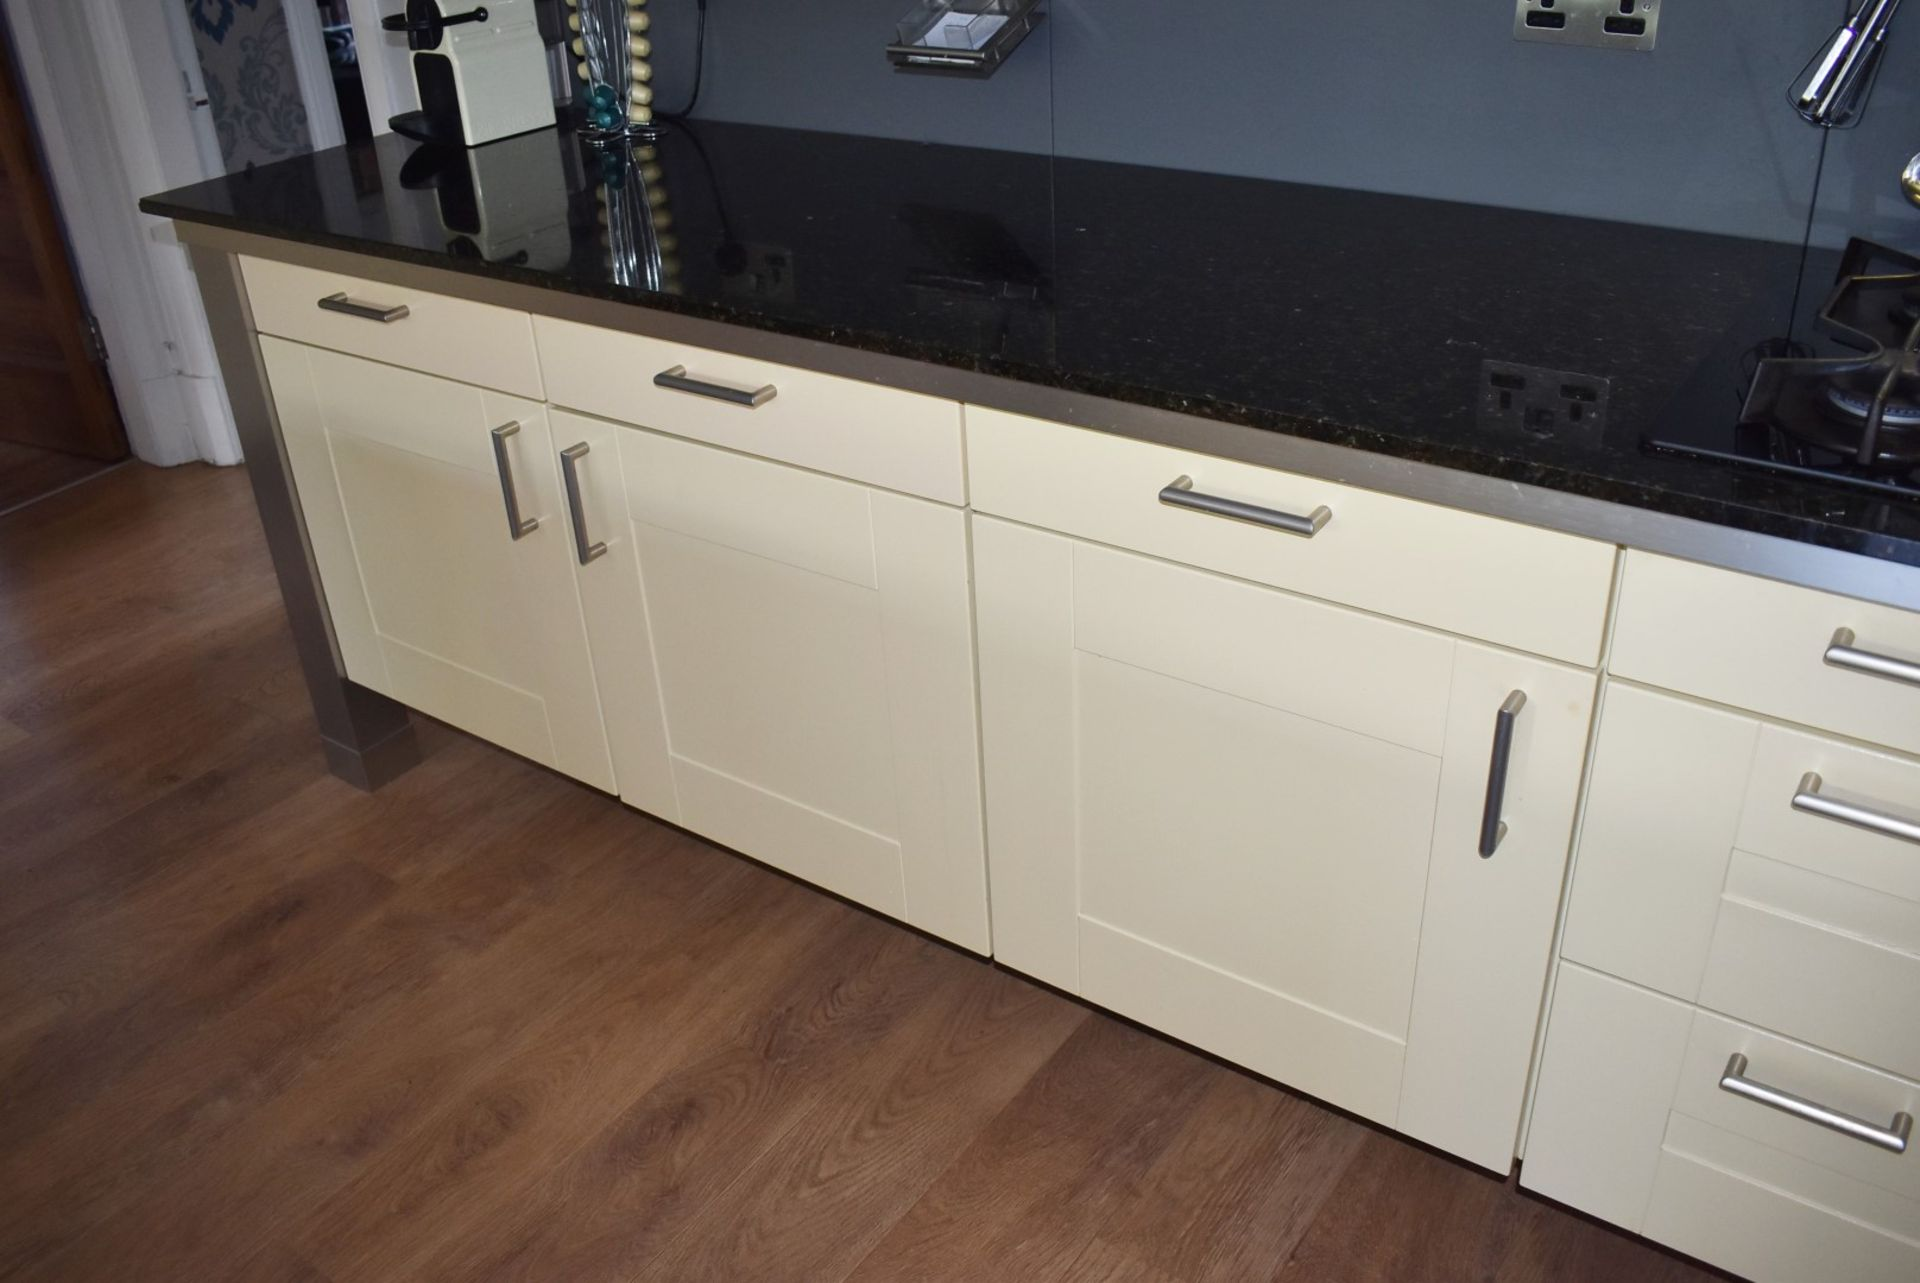 1 x SieMatic Contemporary Fitted Kitchen With Appliances - Features Shaker Style Doors, Central - Image 81 of 96